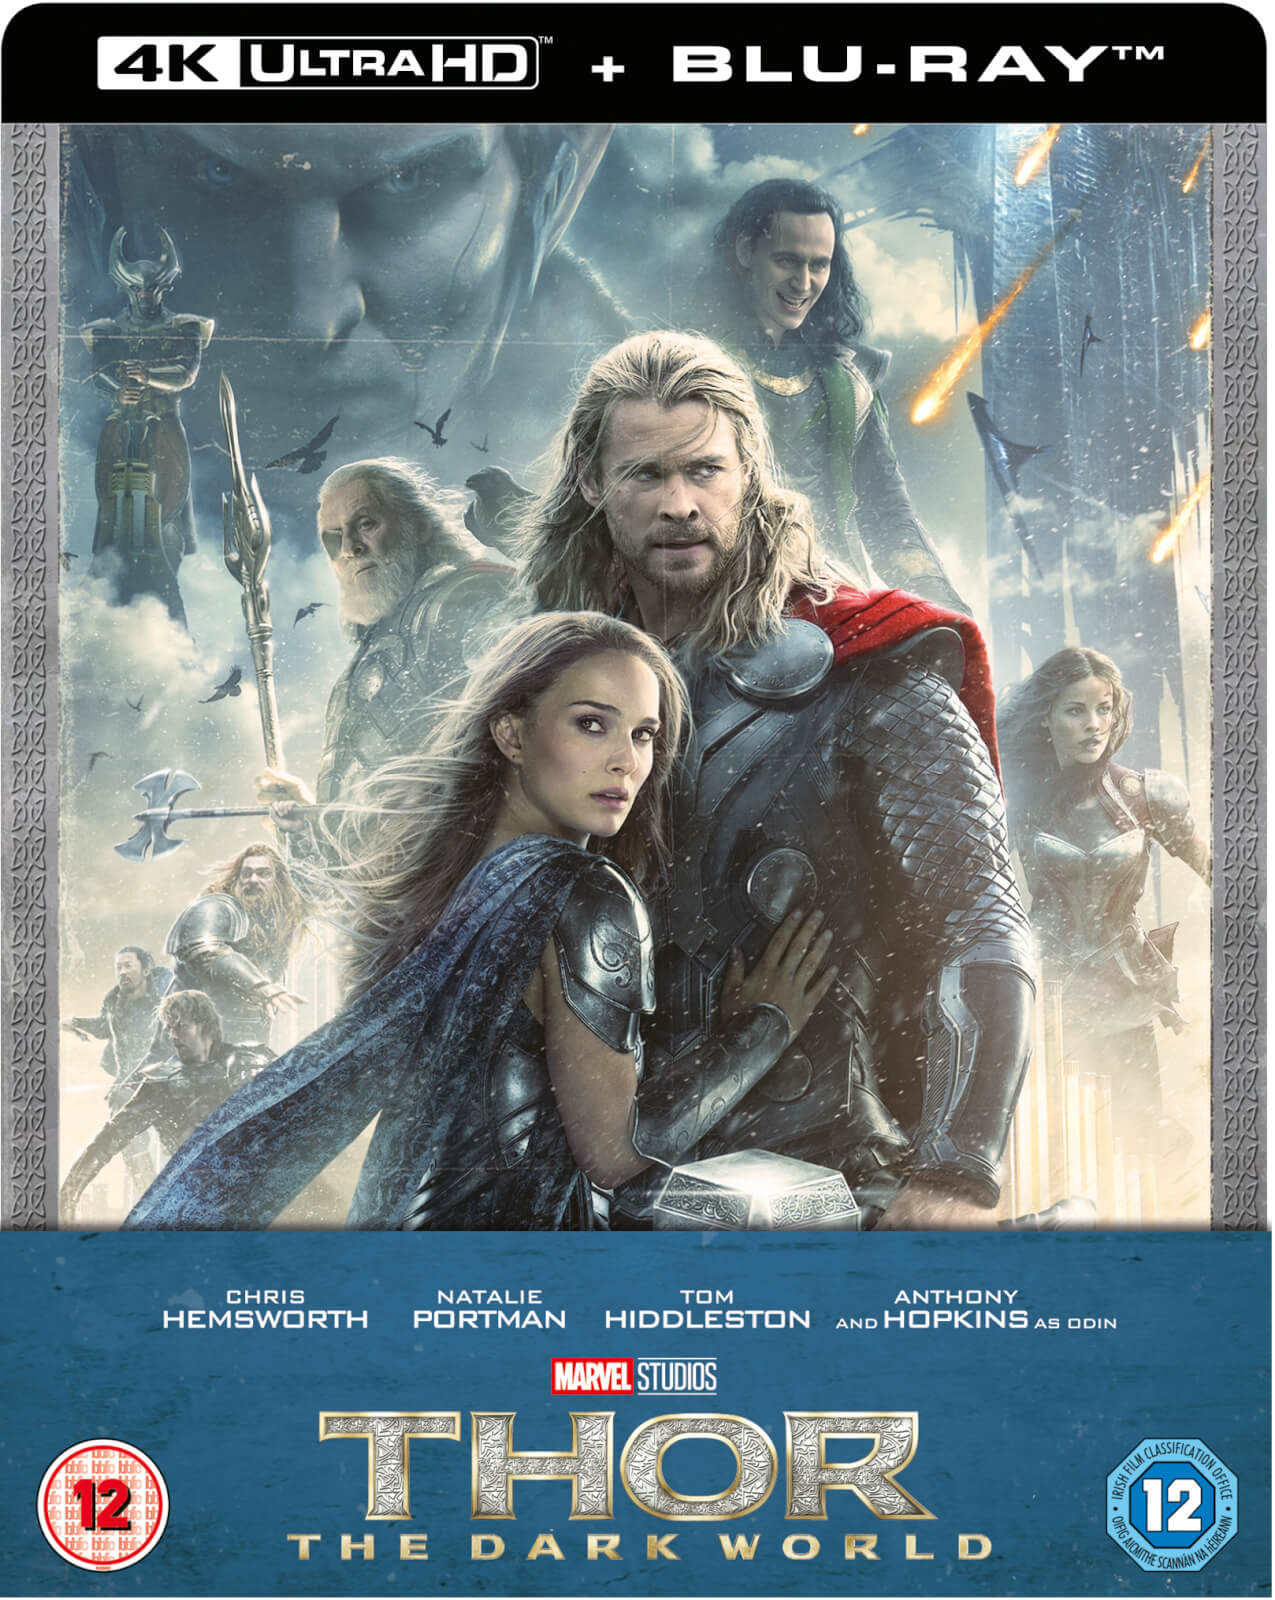 Thor: The Dark World 4K - Zavvi Exclusive Limited Edition Steelbook (4K UHD + Blu-ray) (UK Import)